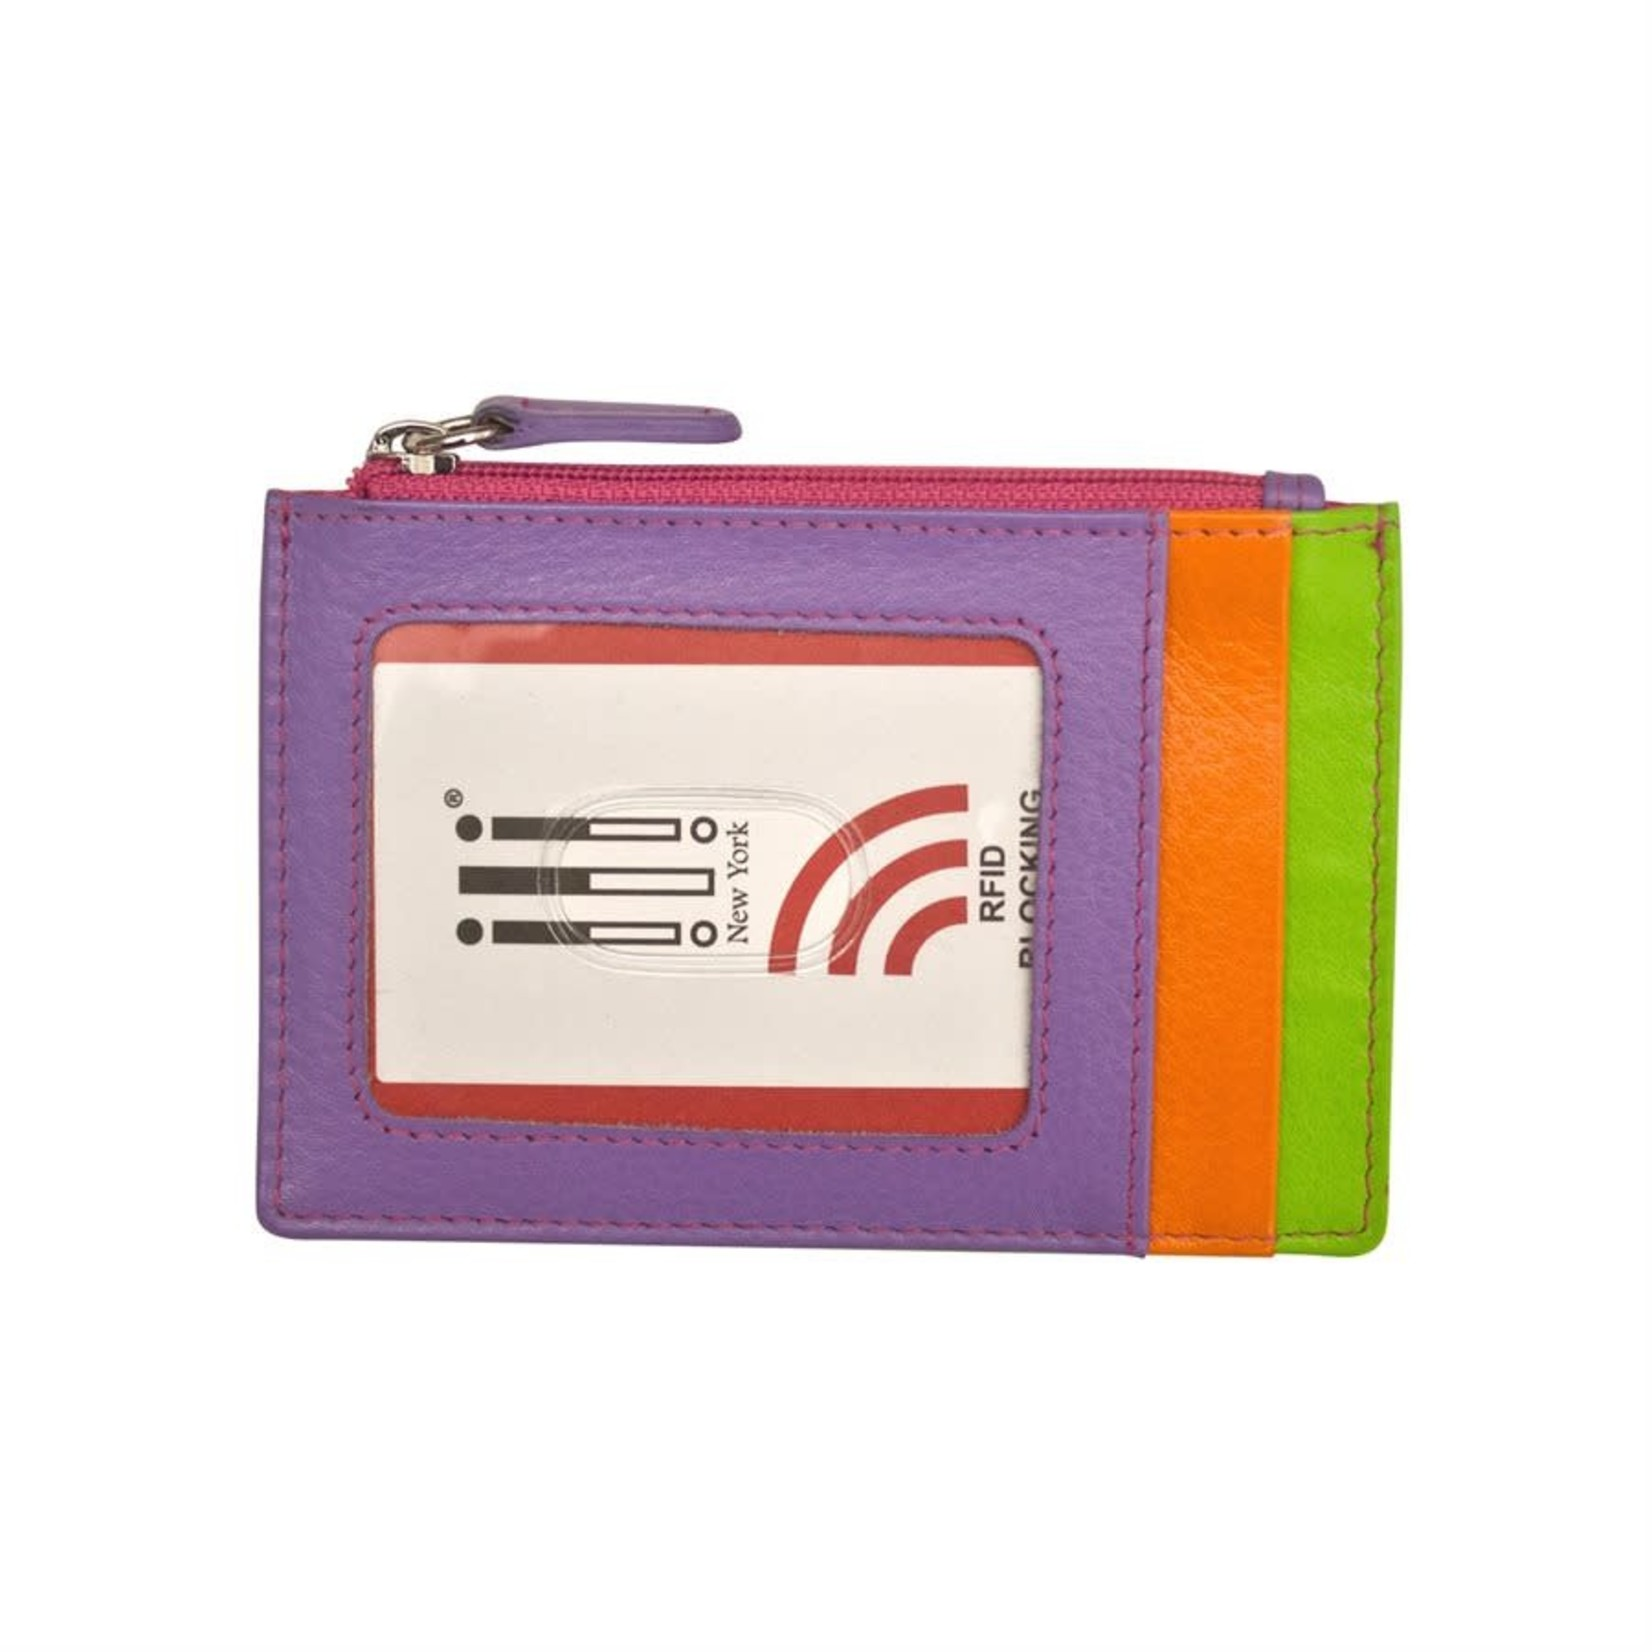 Leather Handbags and Accessories 7416 Palm Beach - RFID Card Holder